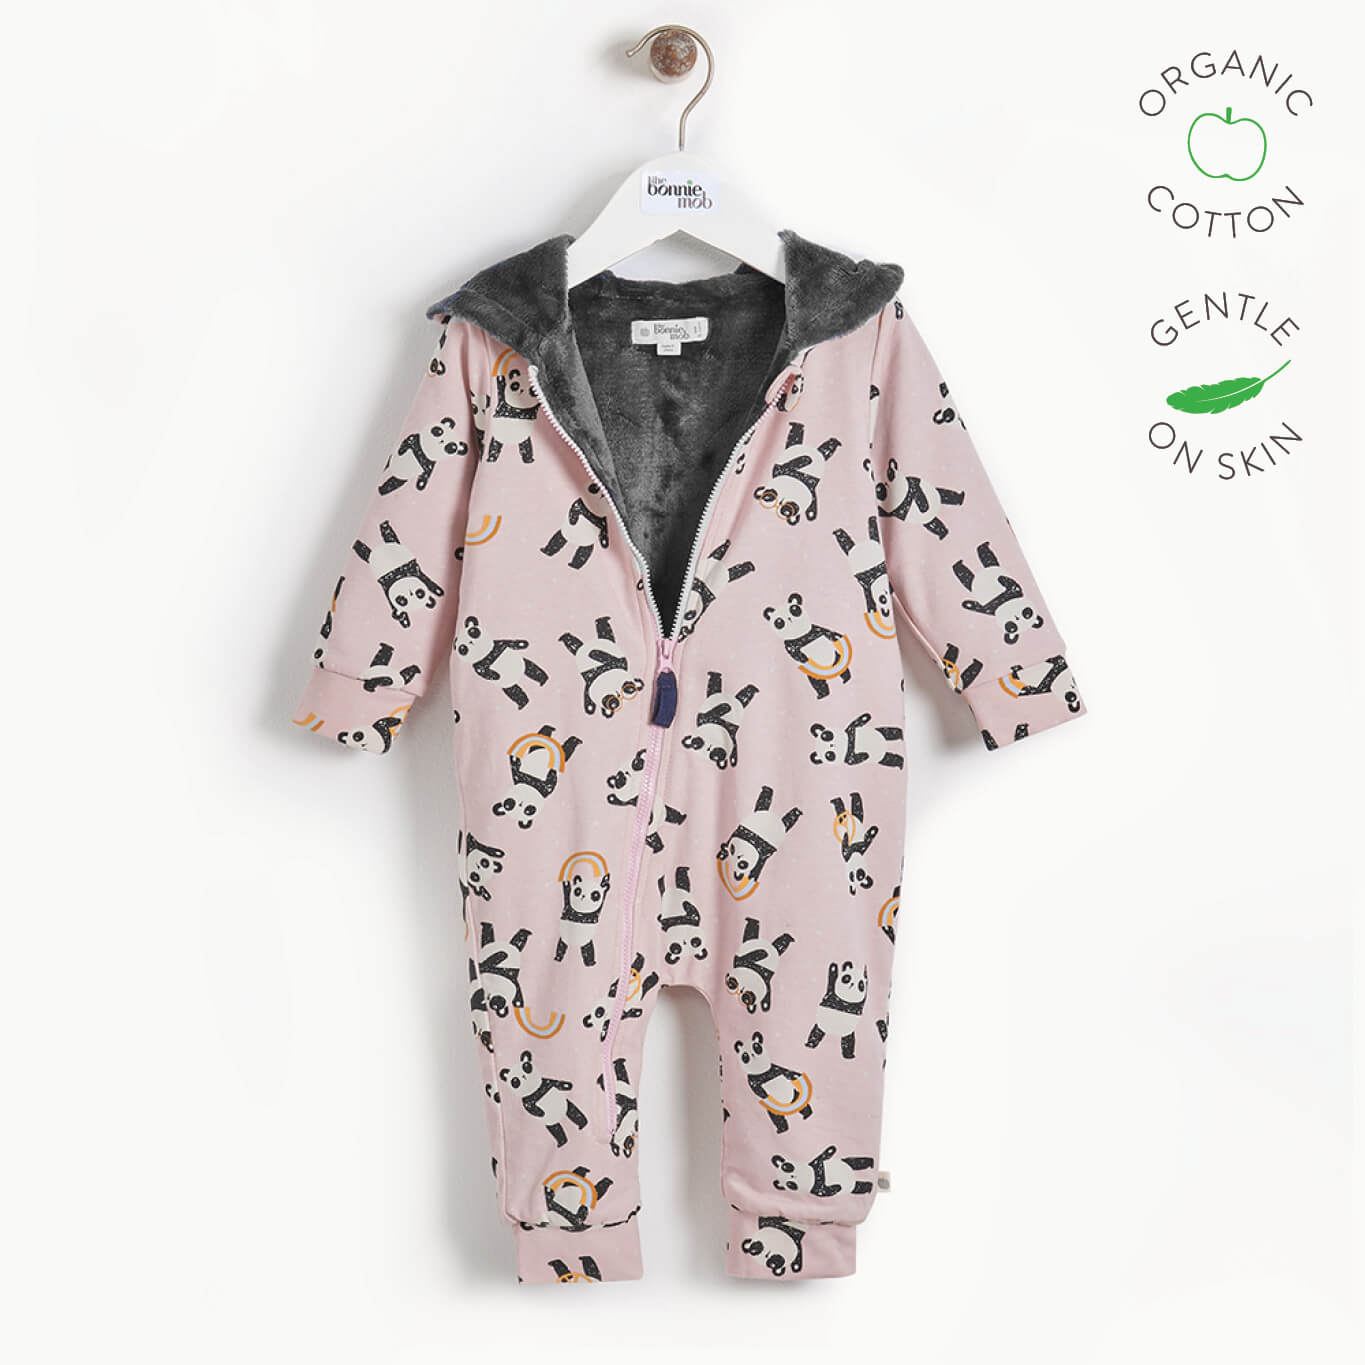 PLAY - Baby Hooded Panda Onesie Lined with Faux Fur - PINK